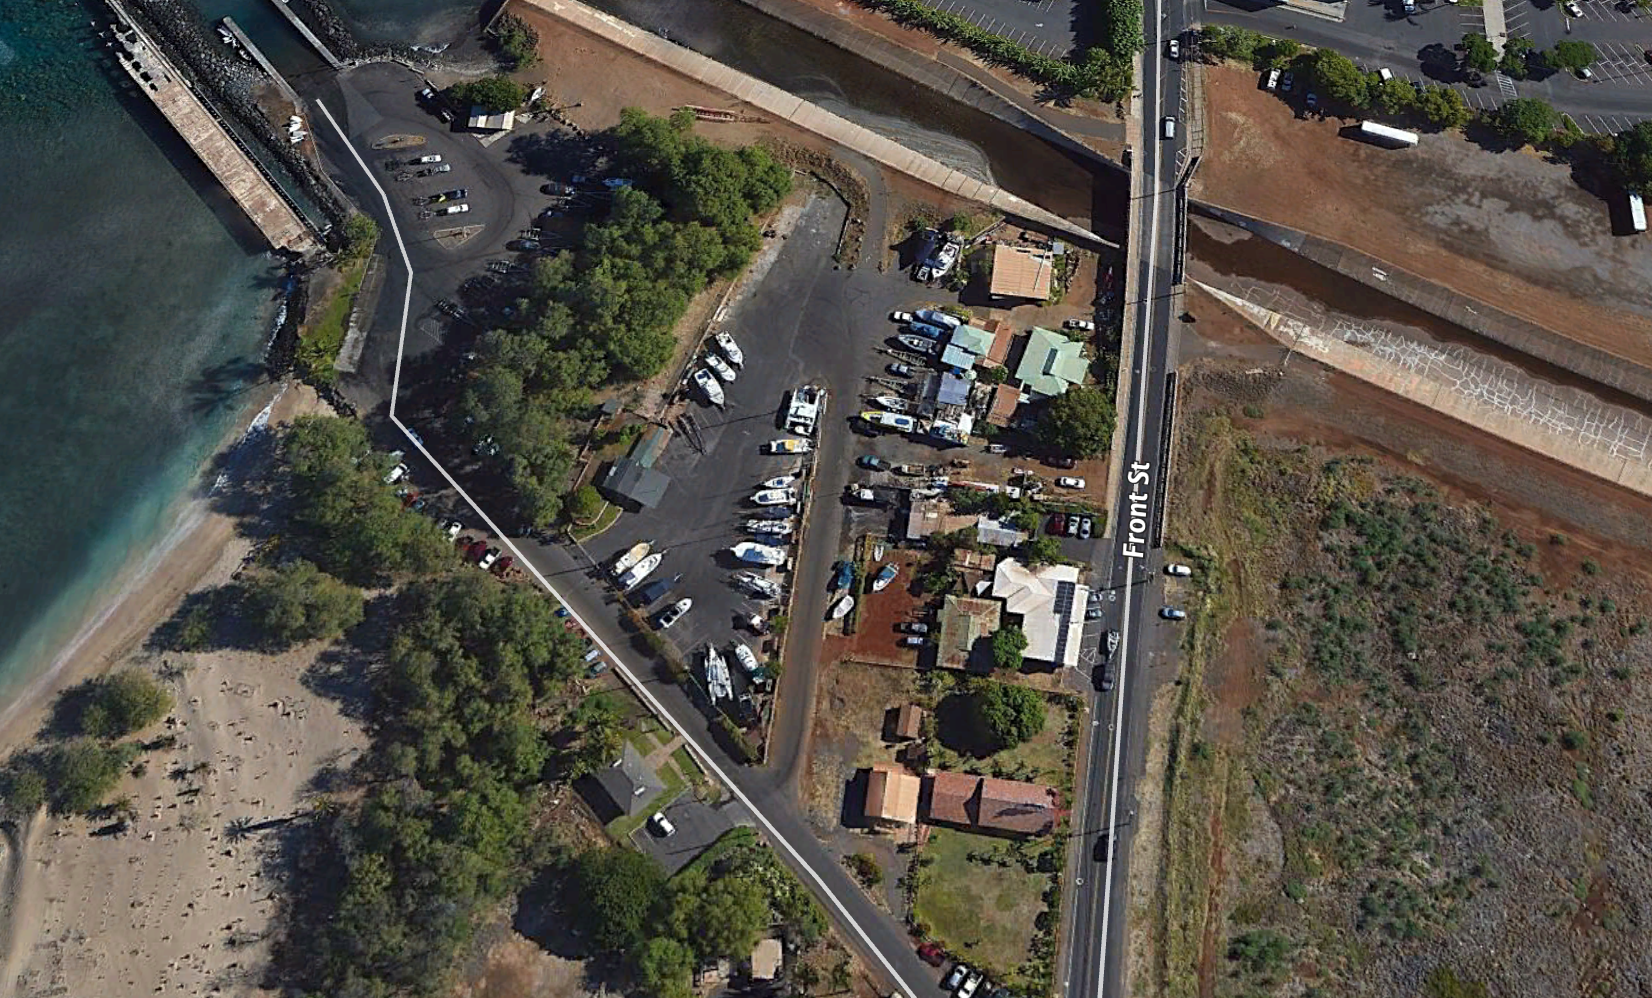 General vicinity of property to be leased through auction